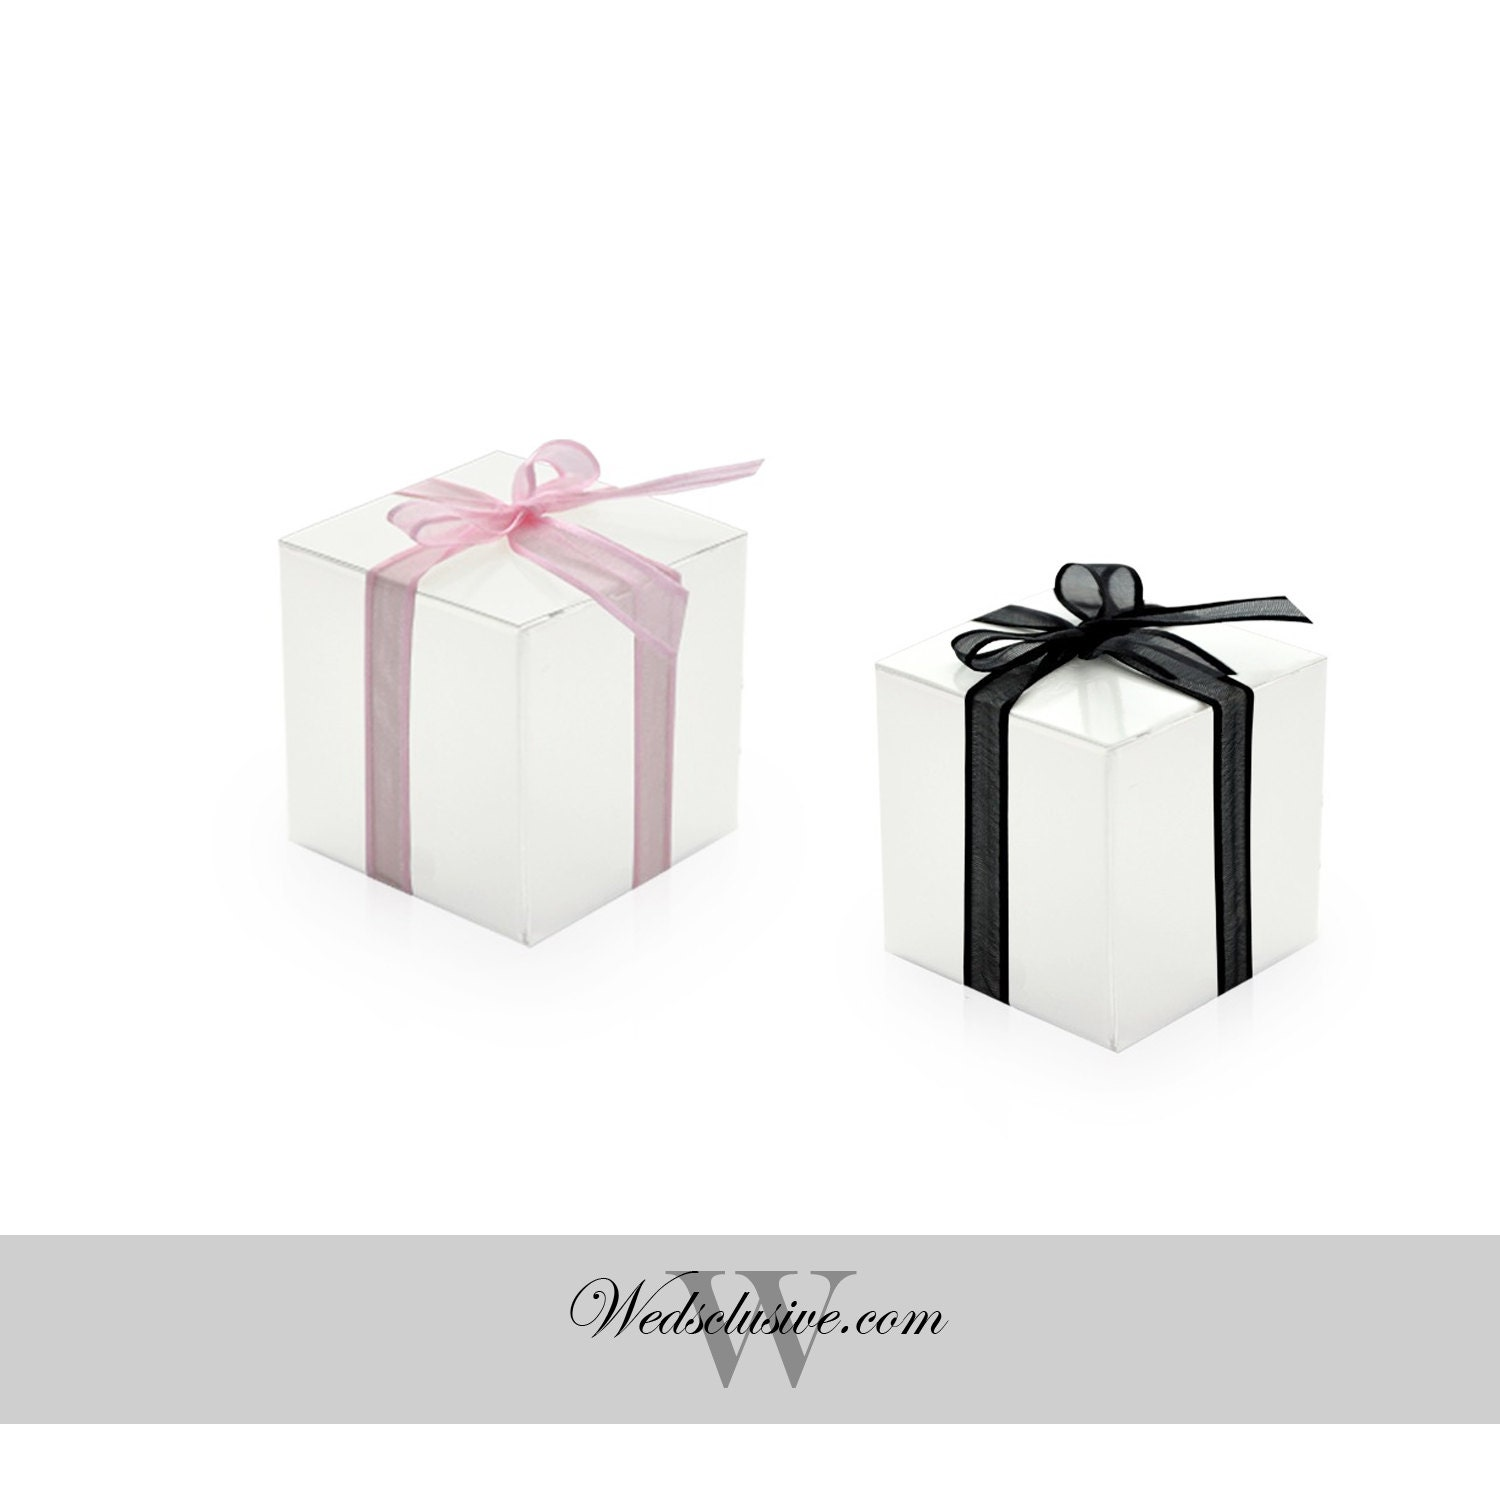 Wedding Favor Boxes White : White favor boxes diy wedding favors truffle and candy